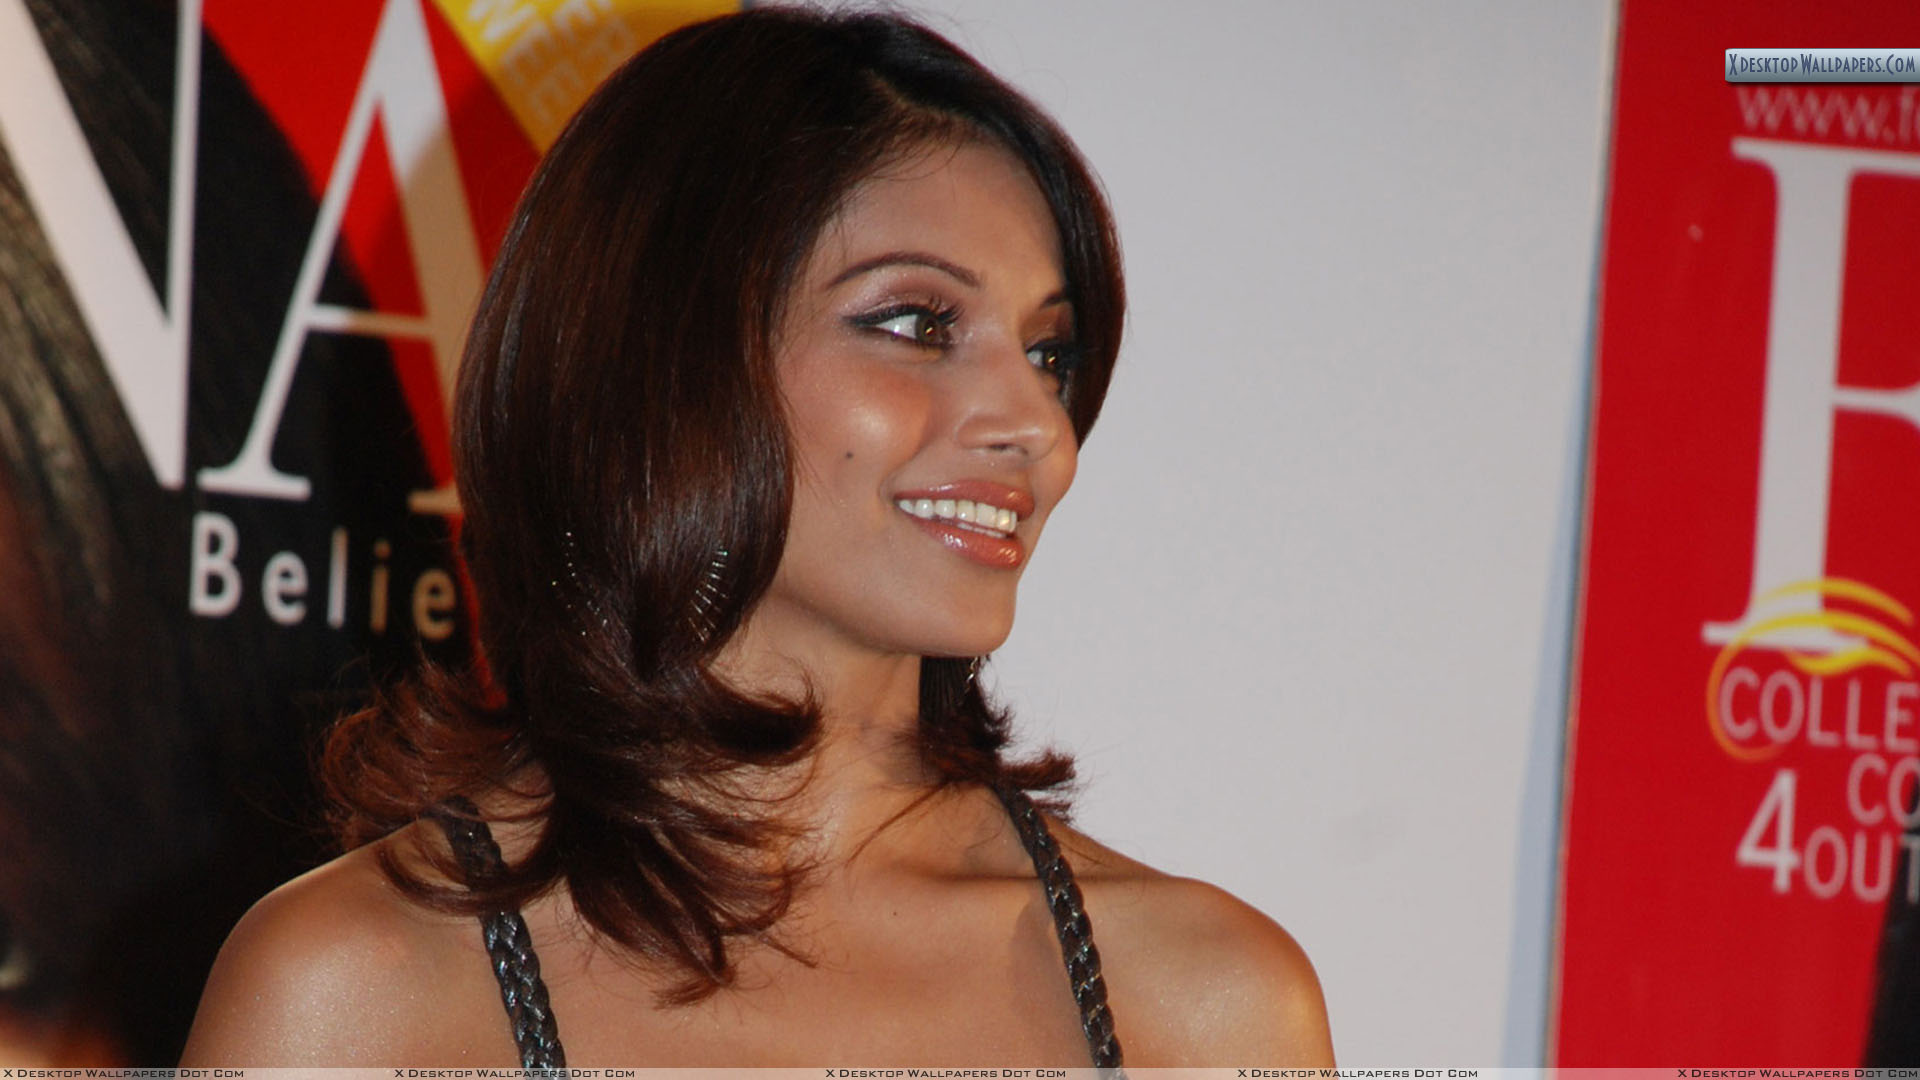 bipasha basu smiling photoshoot in events wallpaper